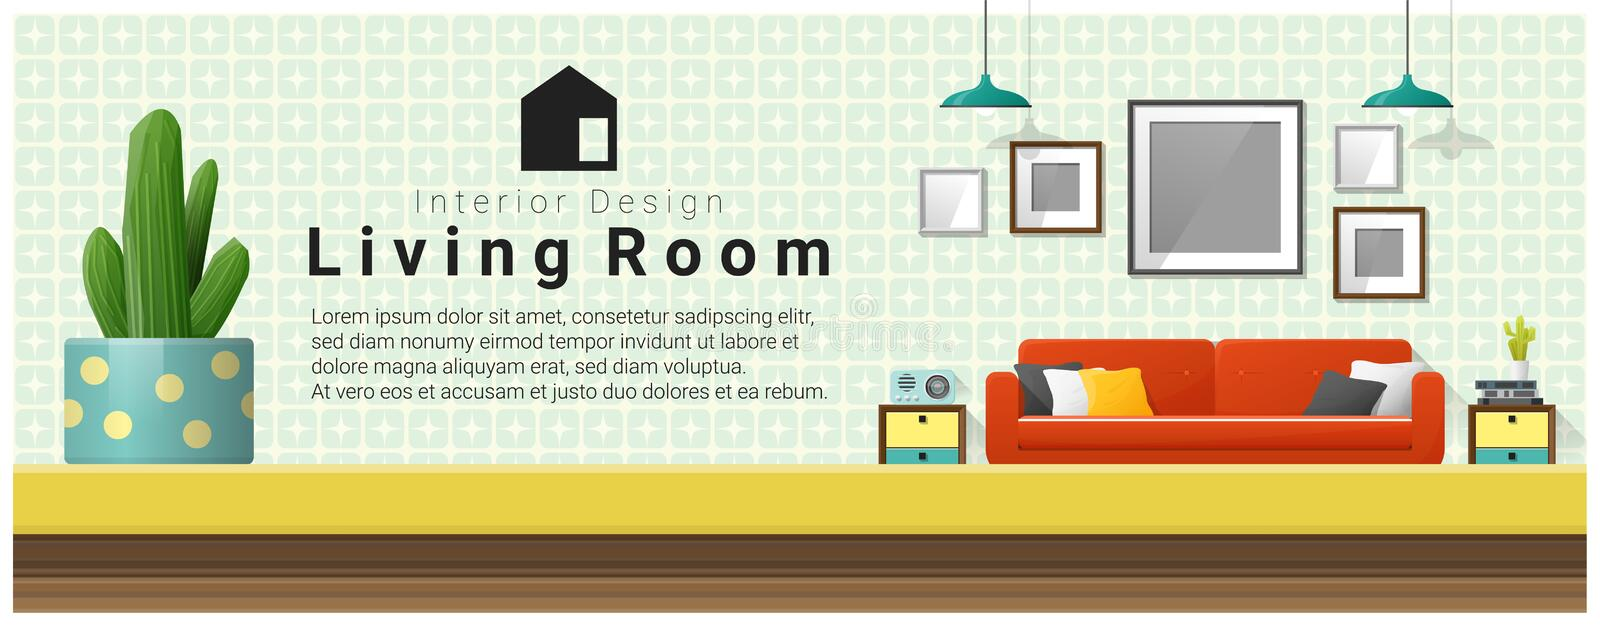 Interior design with table top and Modern living room background stock illustration